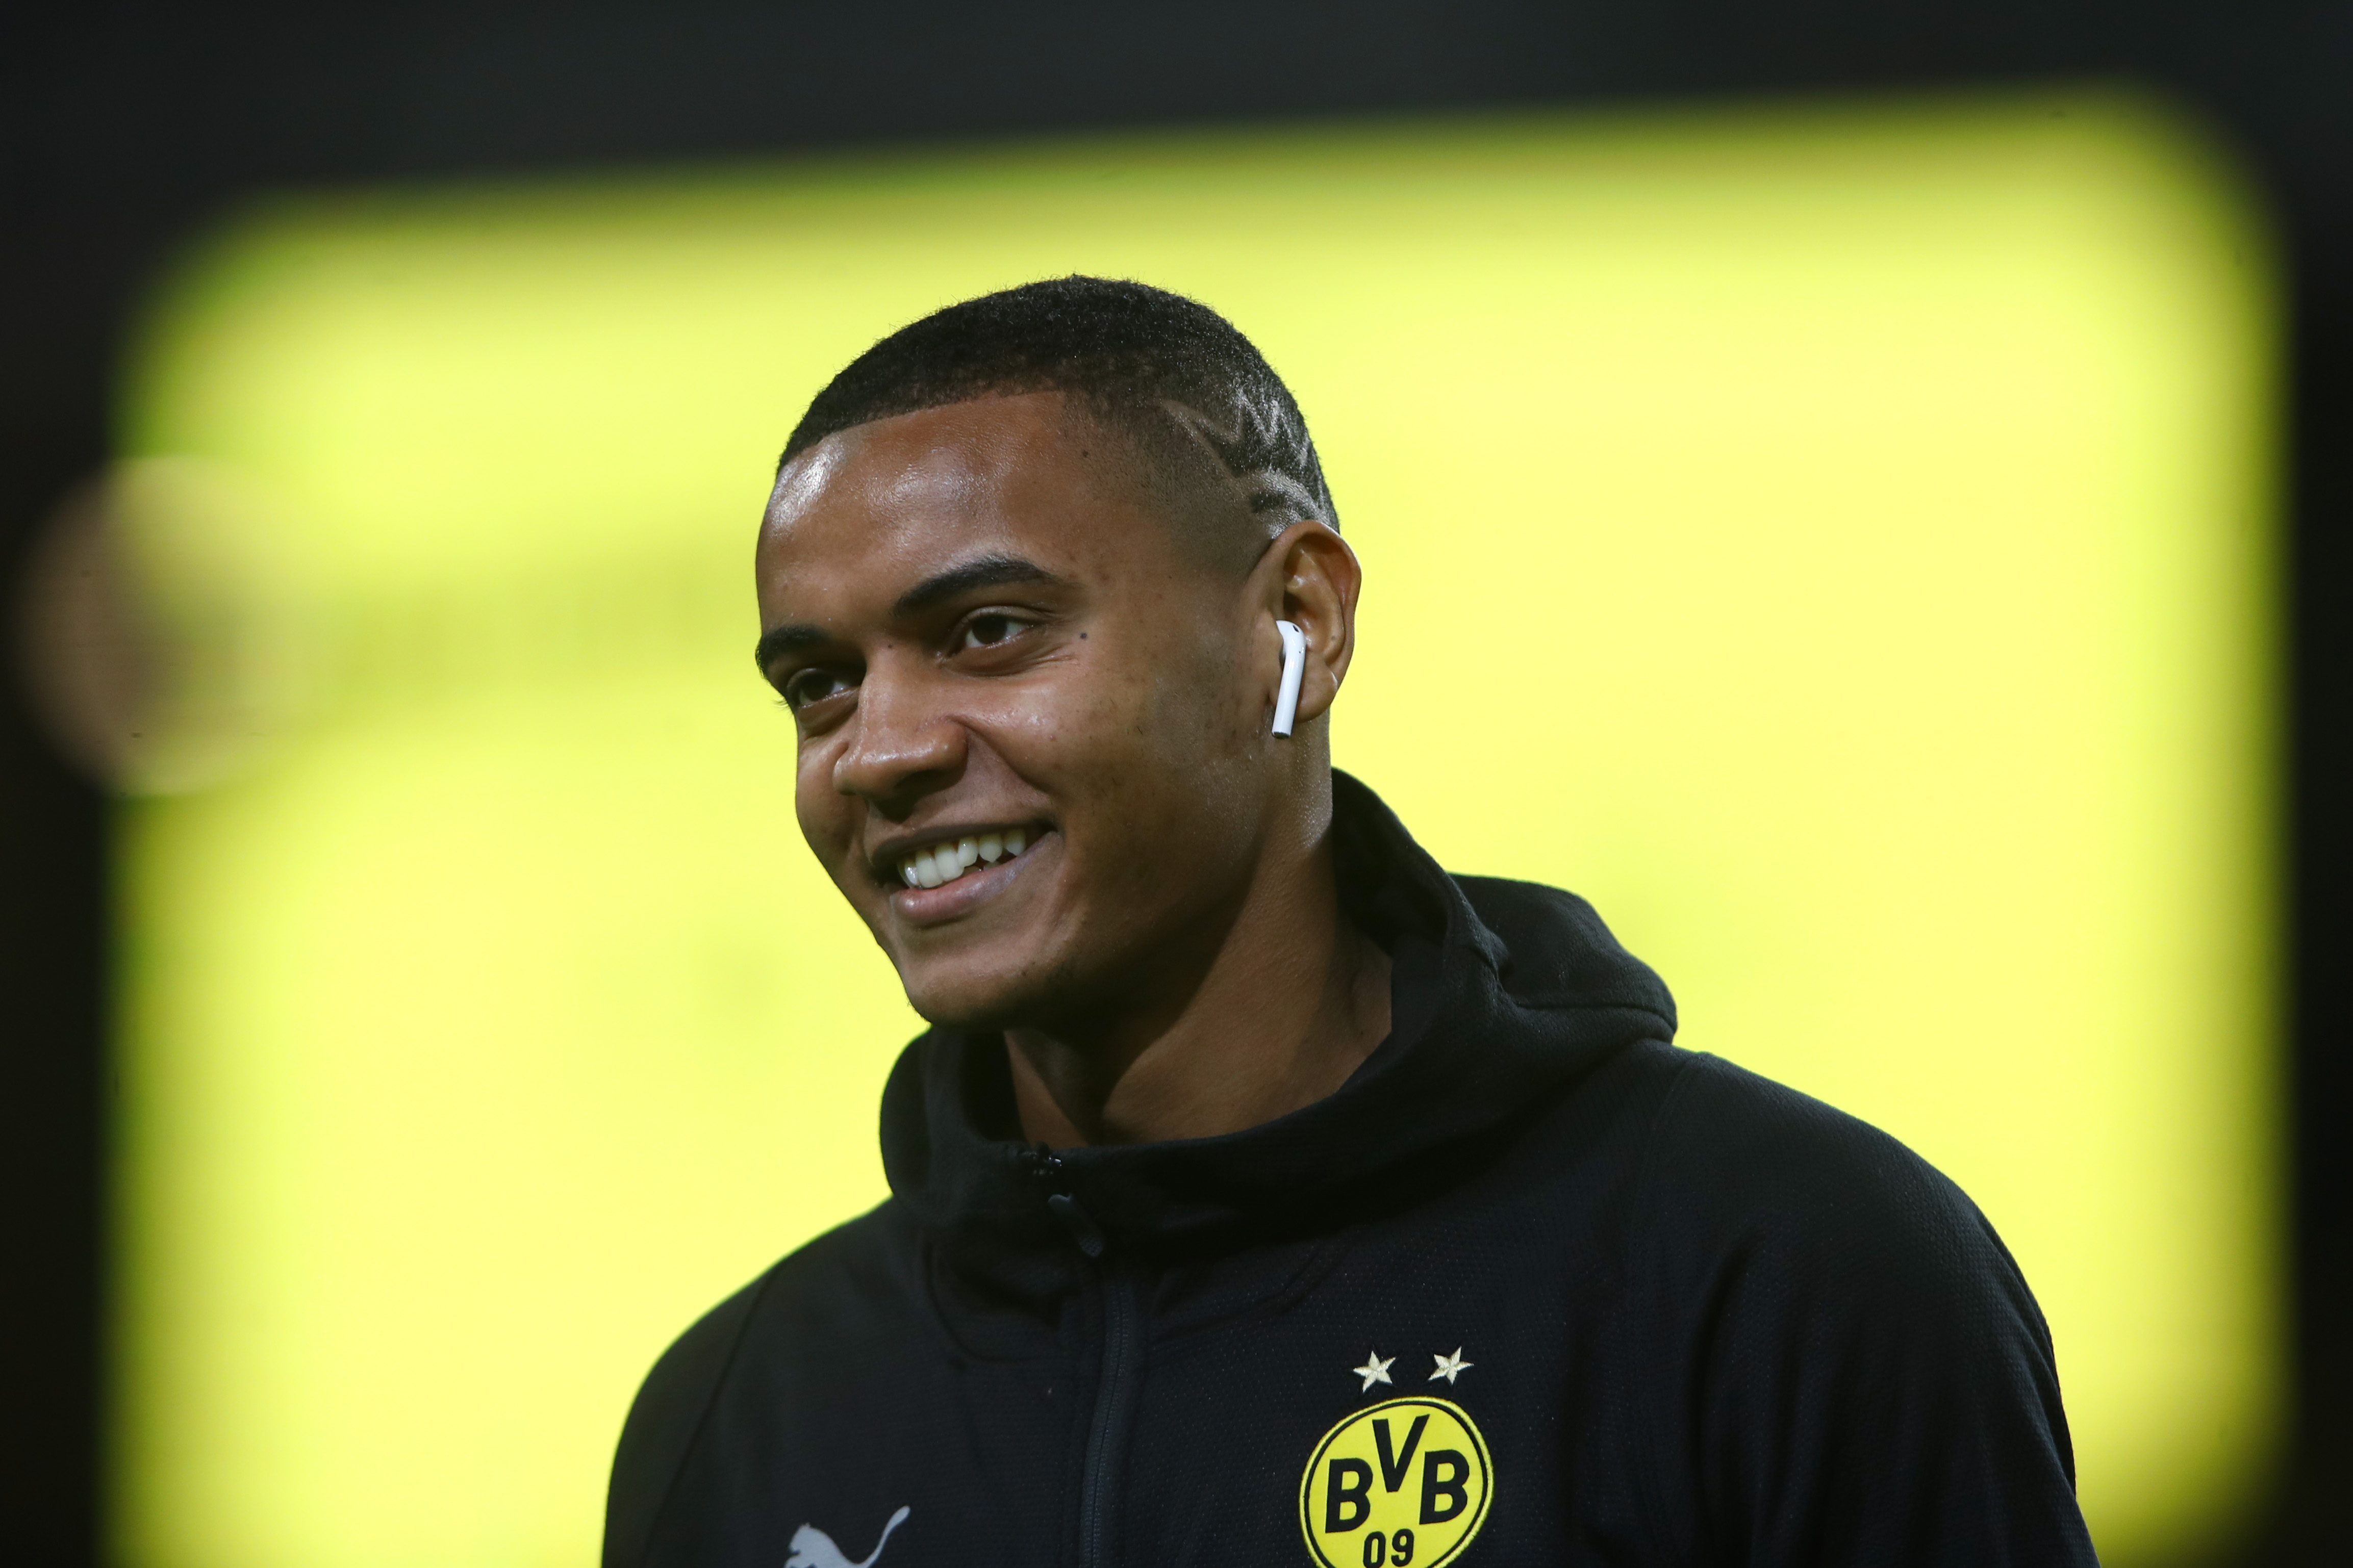 Manuel Akanji can be a cost-effective option for Manchester United (Photo by Alex Grimm/Bongarts/Getty Images)